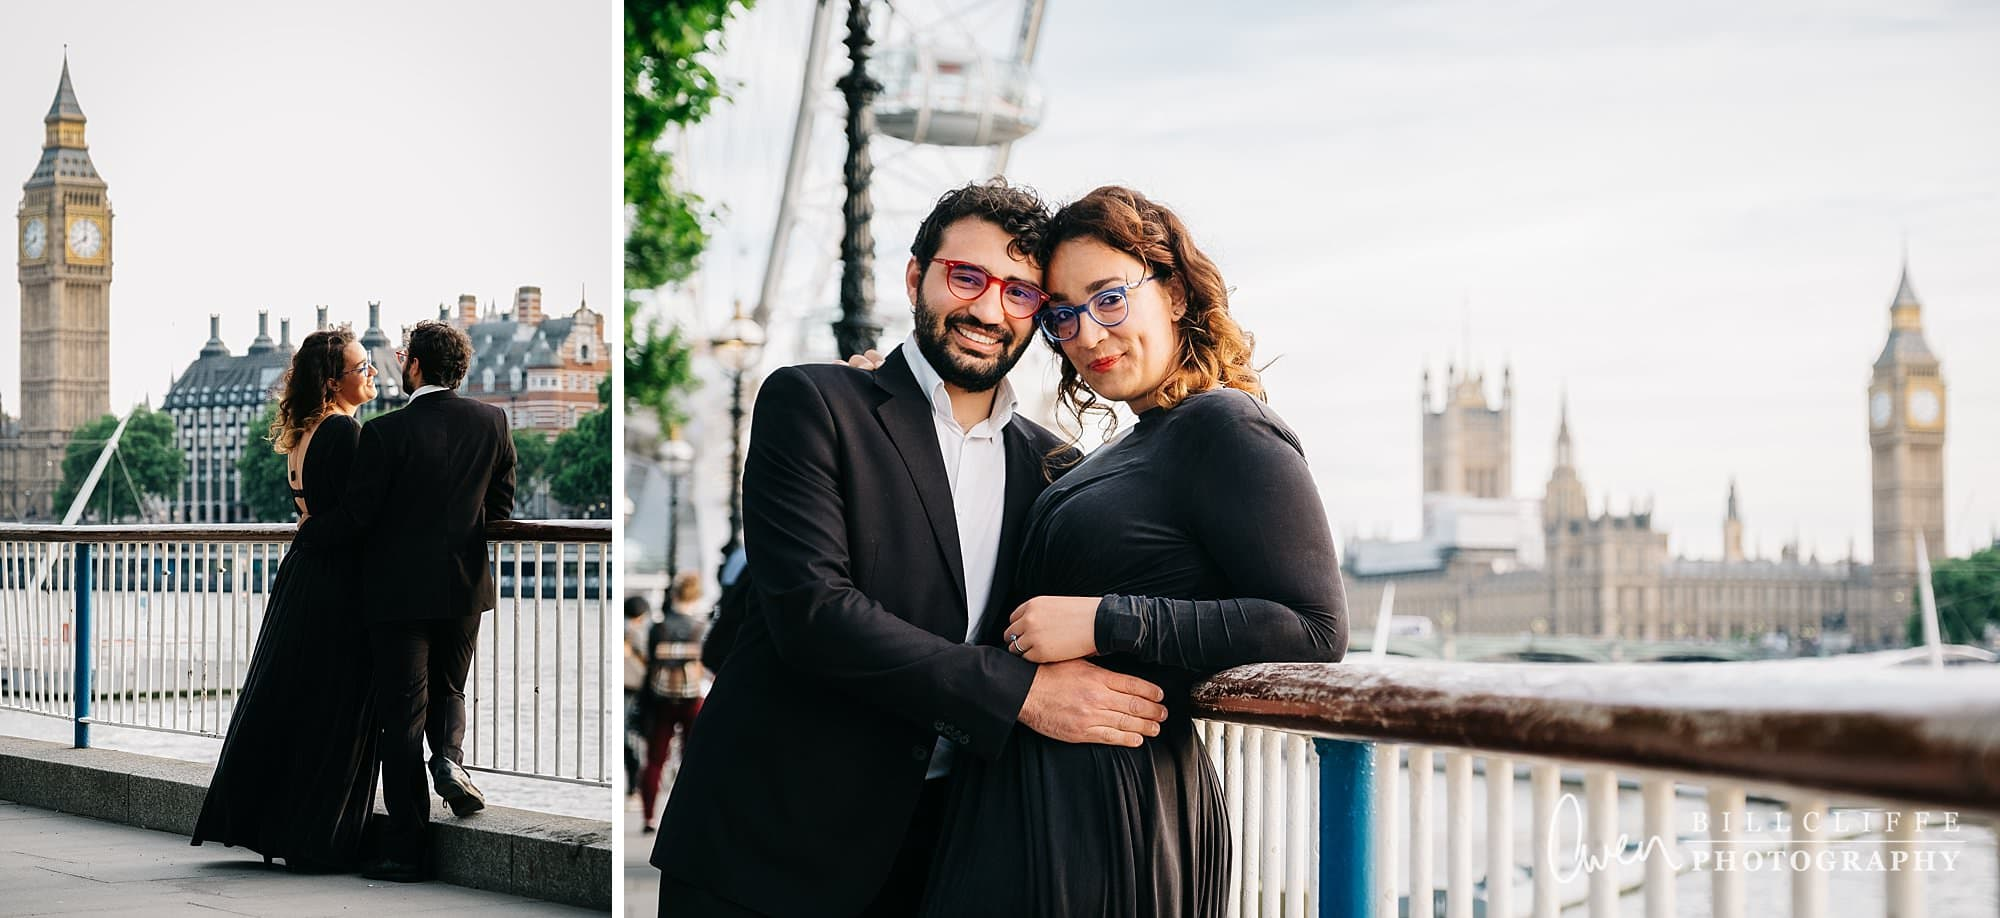 london engagement proposal photographer routemaster gr 014 - A Romantic Marriage Proposal on a London Routemaster Bus